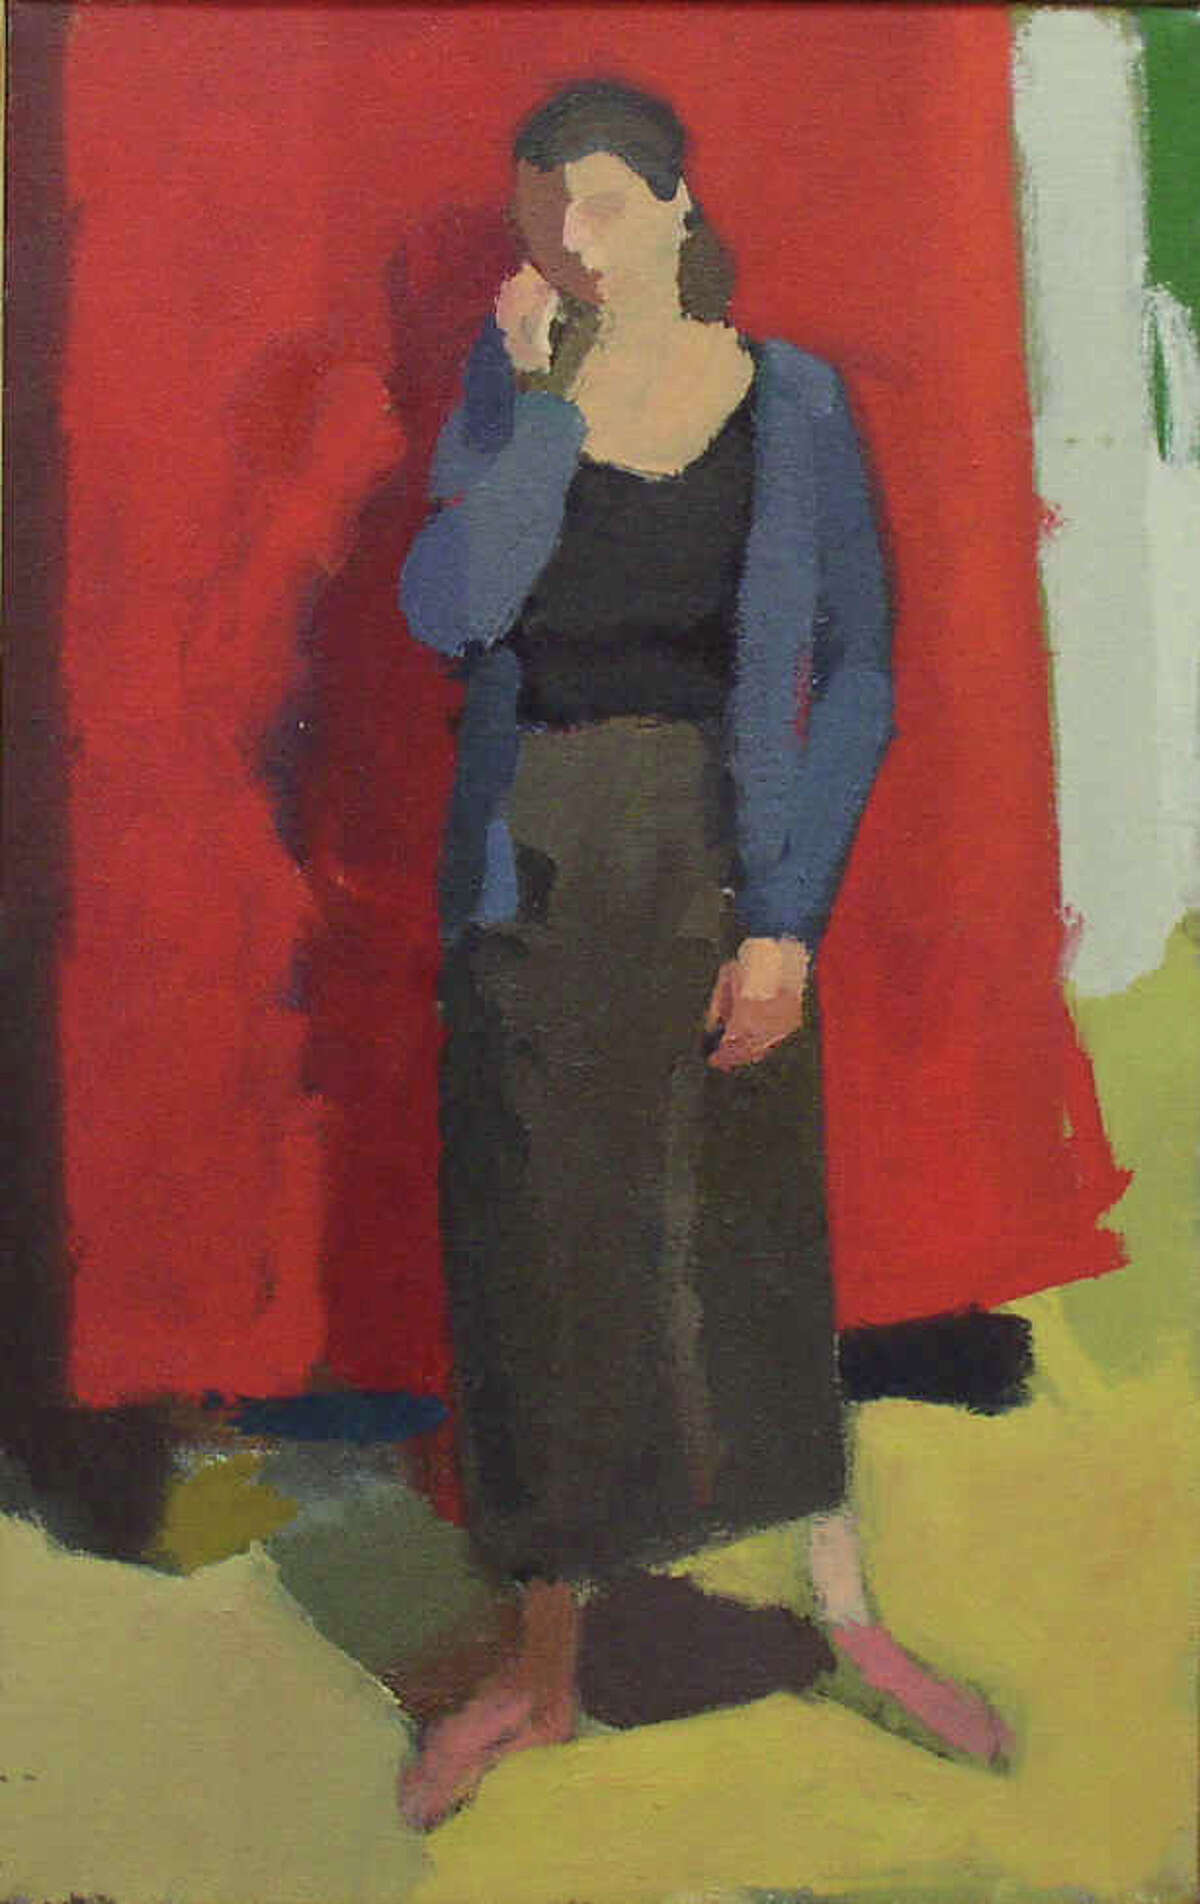 Ken Kewley will talk about his paintings and present slides on Tuesday, Jan. 21, at 11 a.m. at Western Connecticut State University in Danbury.